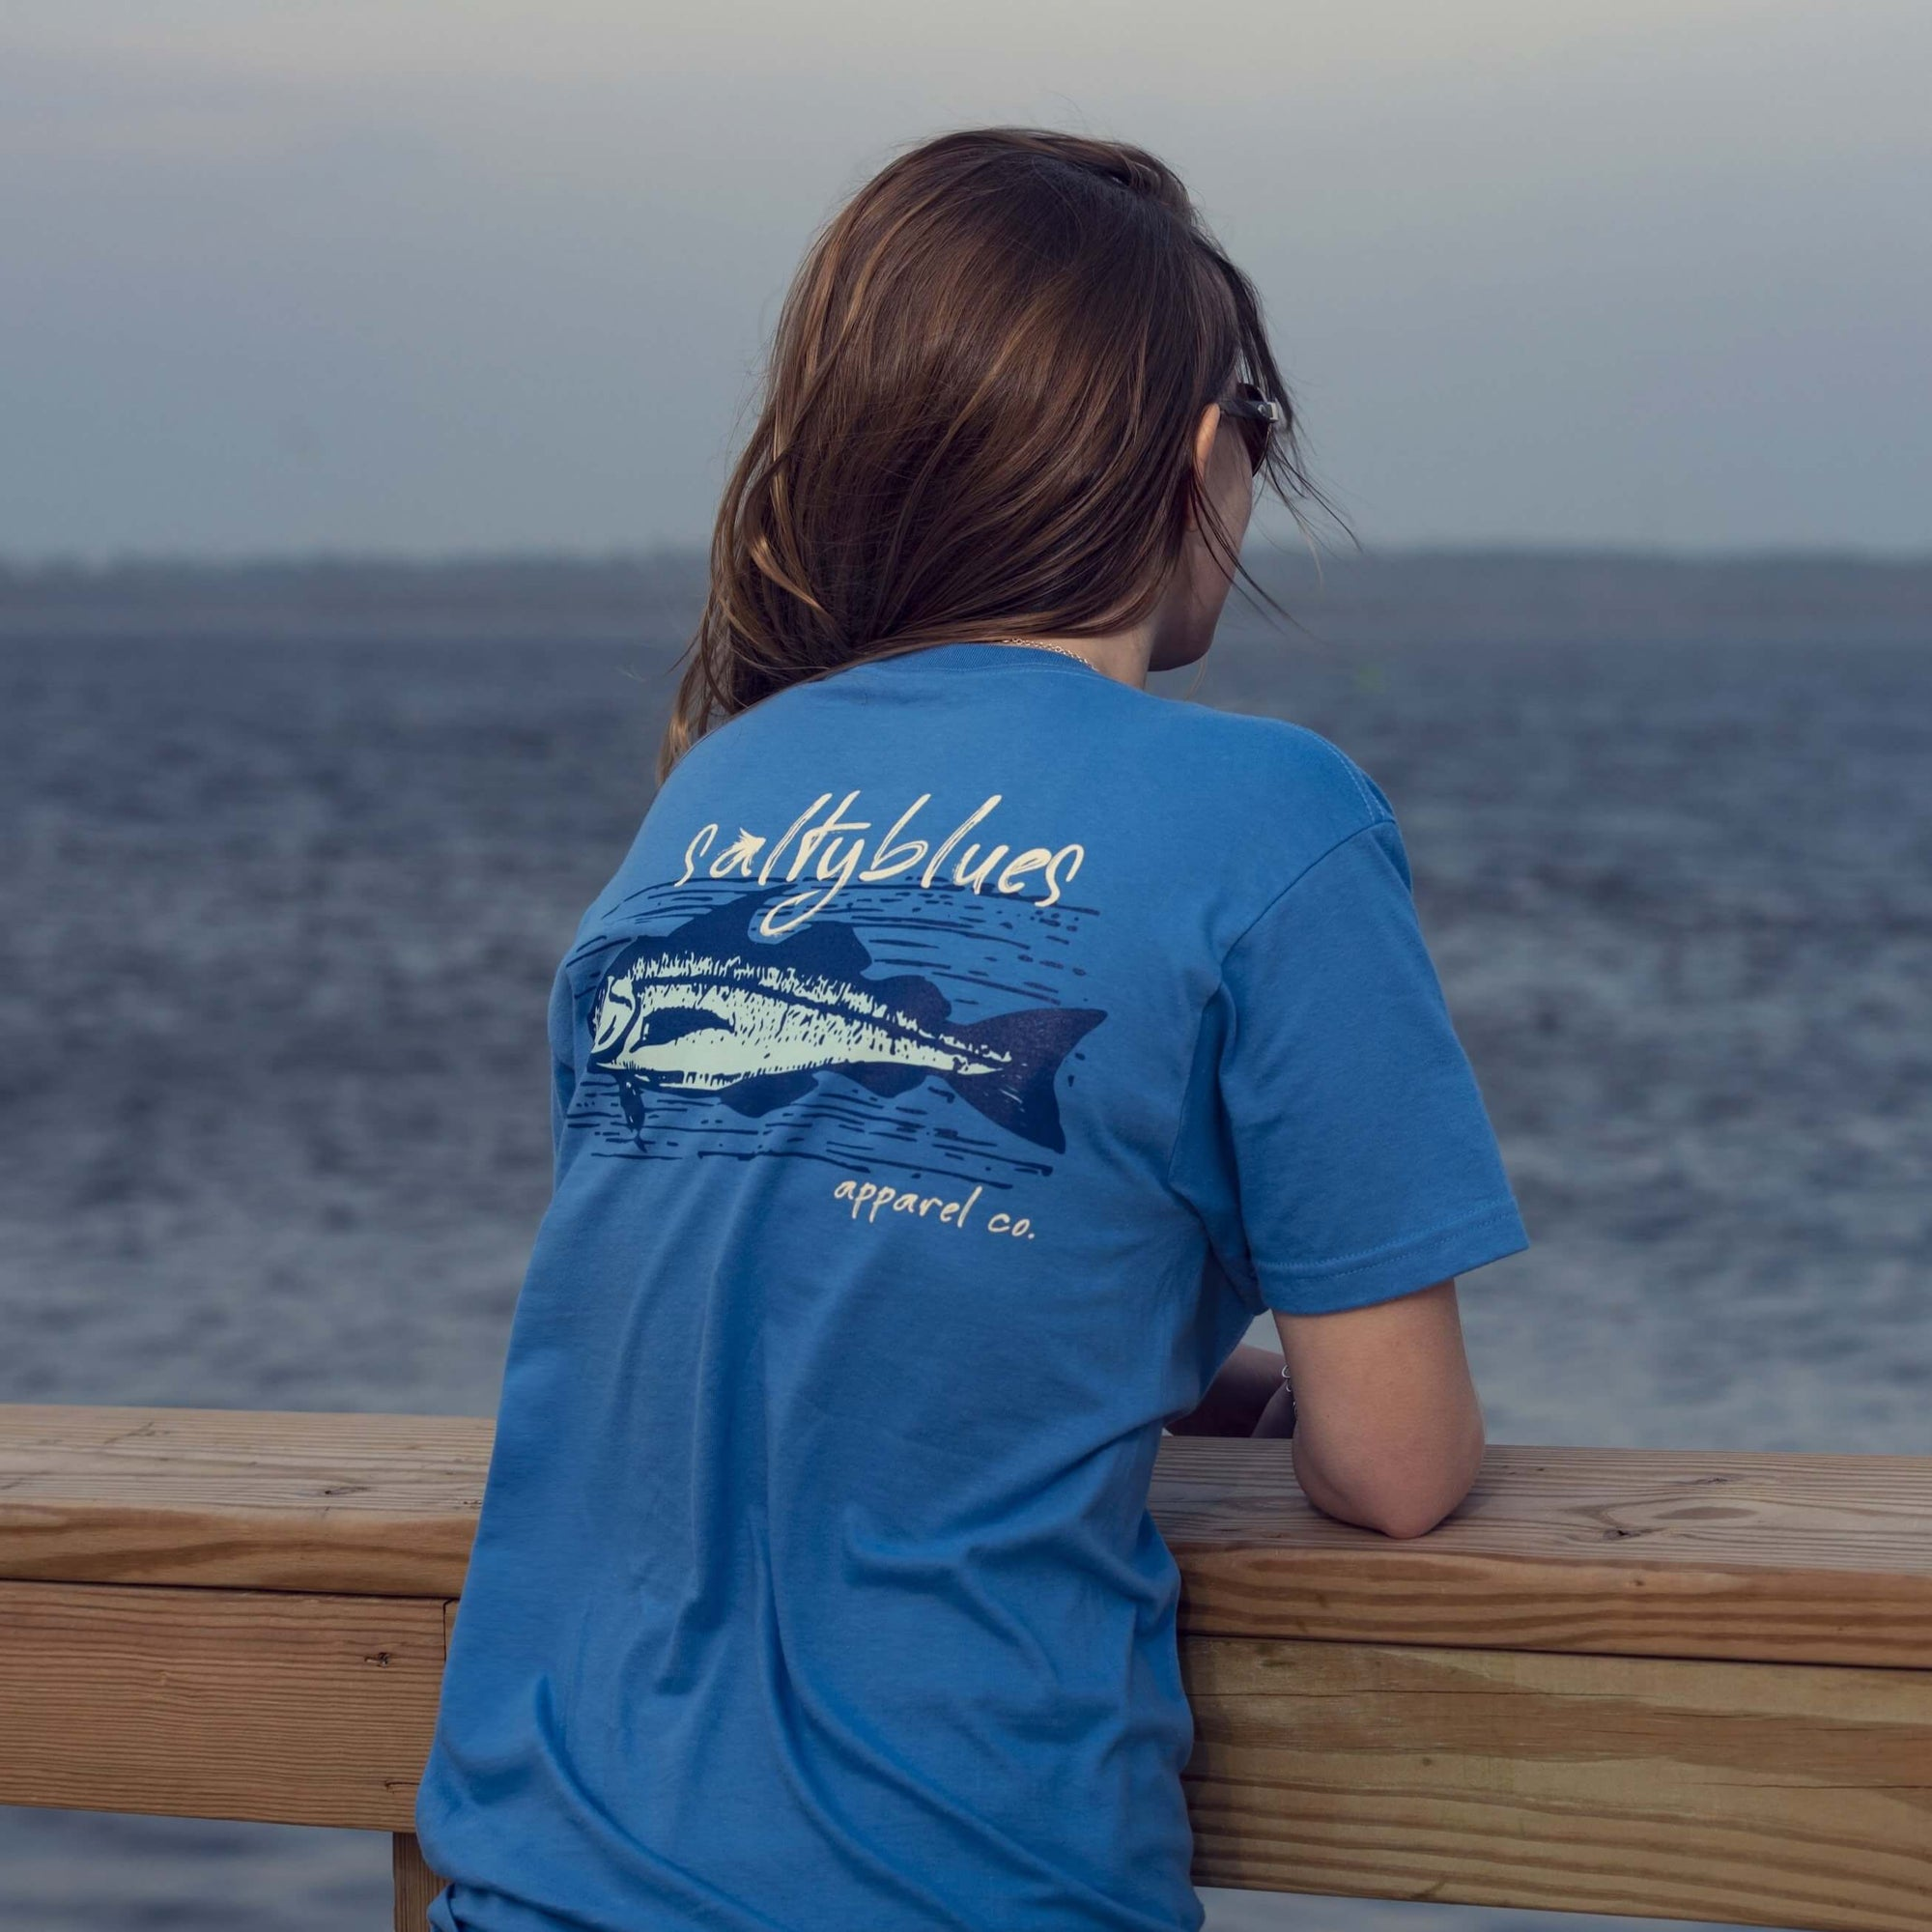 Upstream - T-Shirt - Latitudes & Attitudes LLC